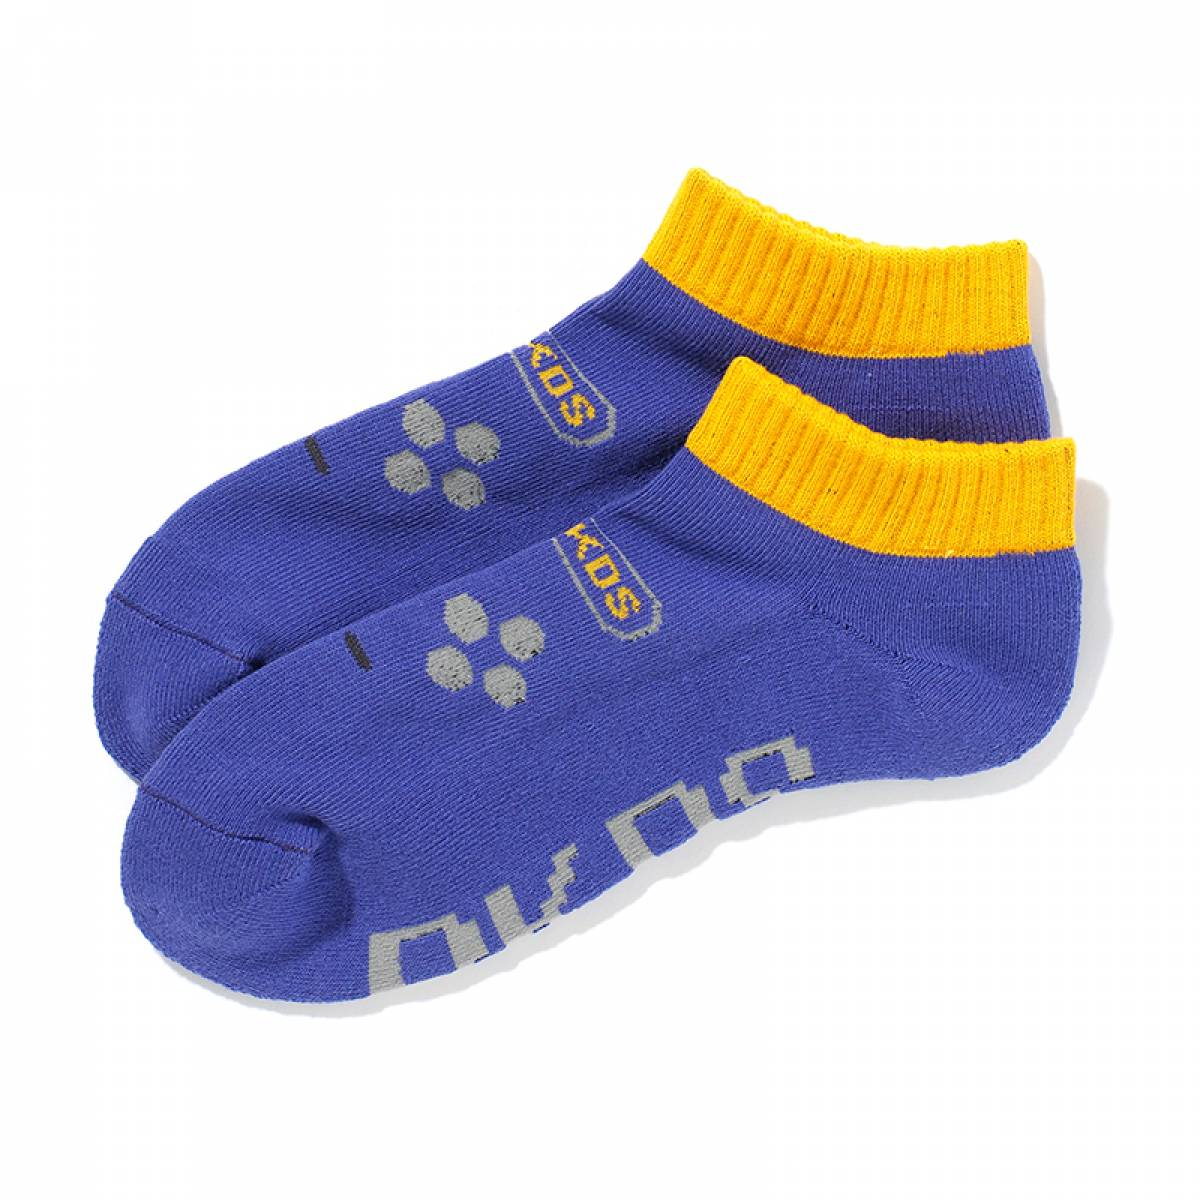 【予約商品】PUNK DRUNKERS SOCKS BOY - PURPLE